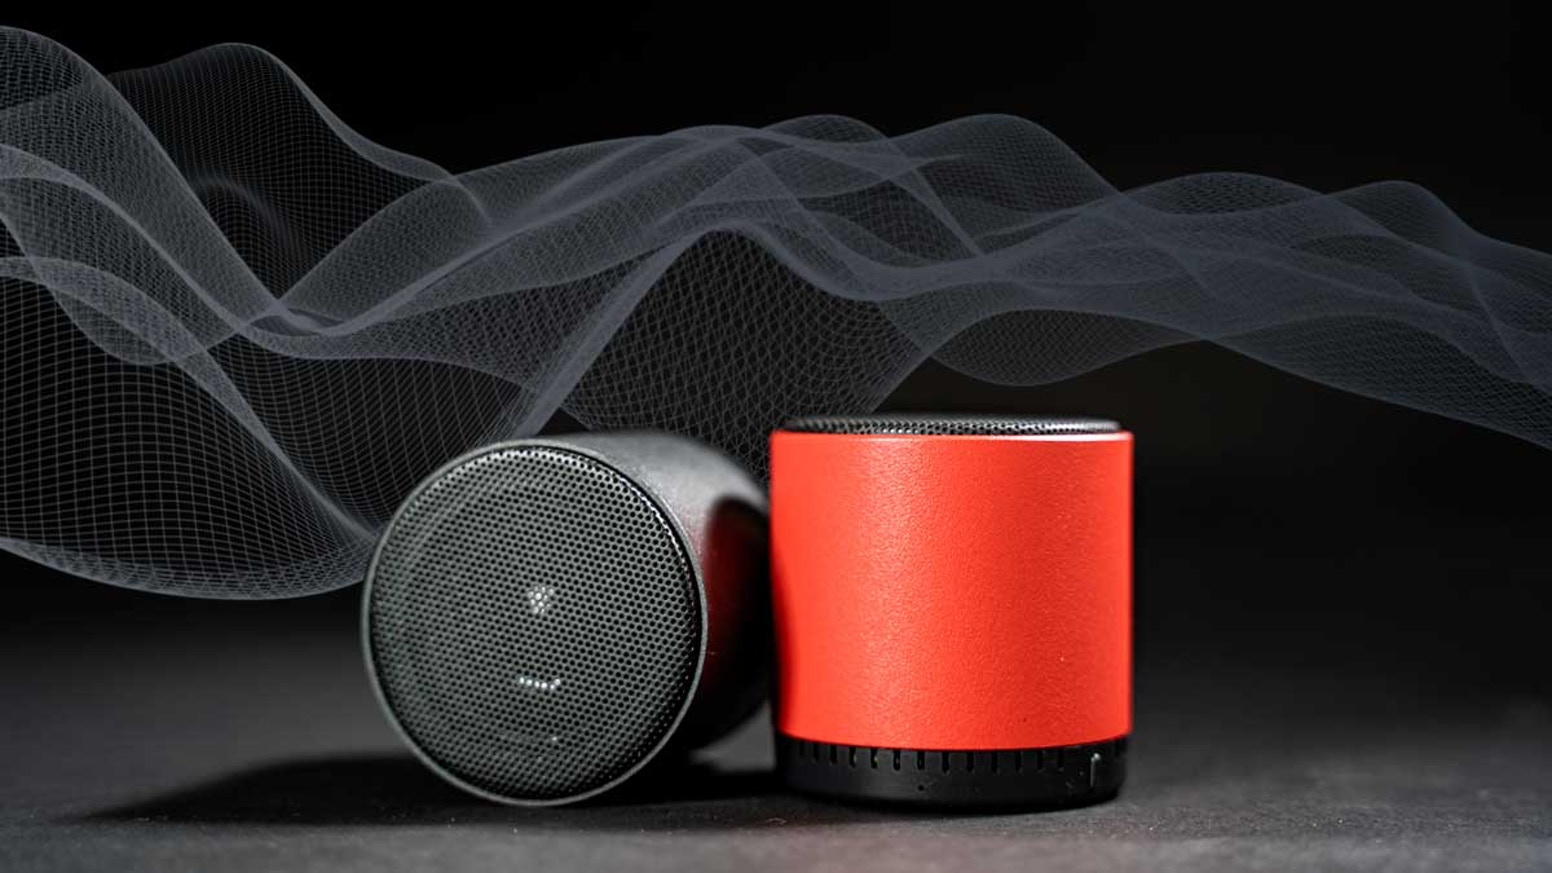 Full-Metal Design | True Wireless Stereo | Pocket Size | Black&Red Color Options